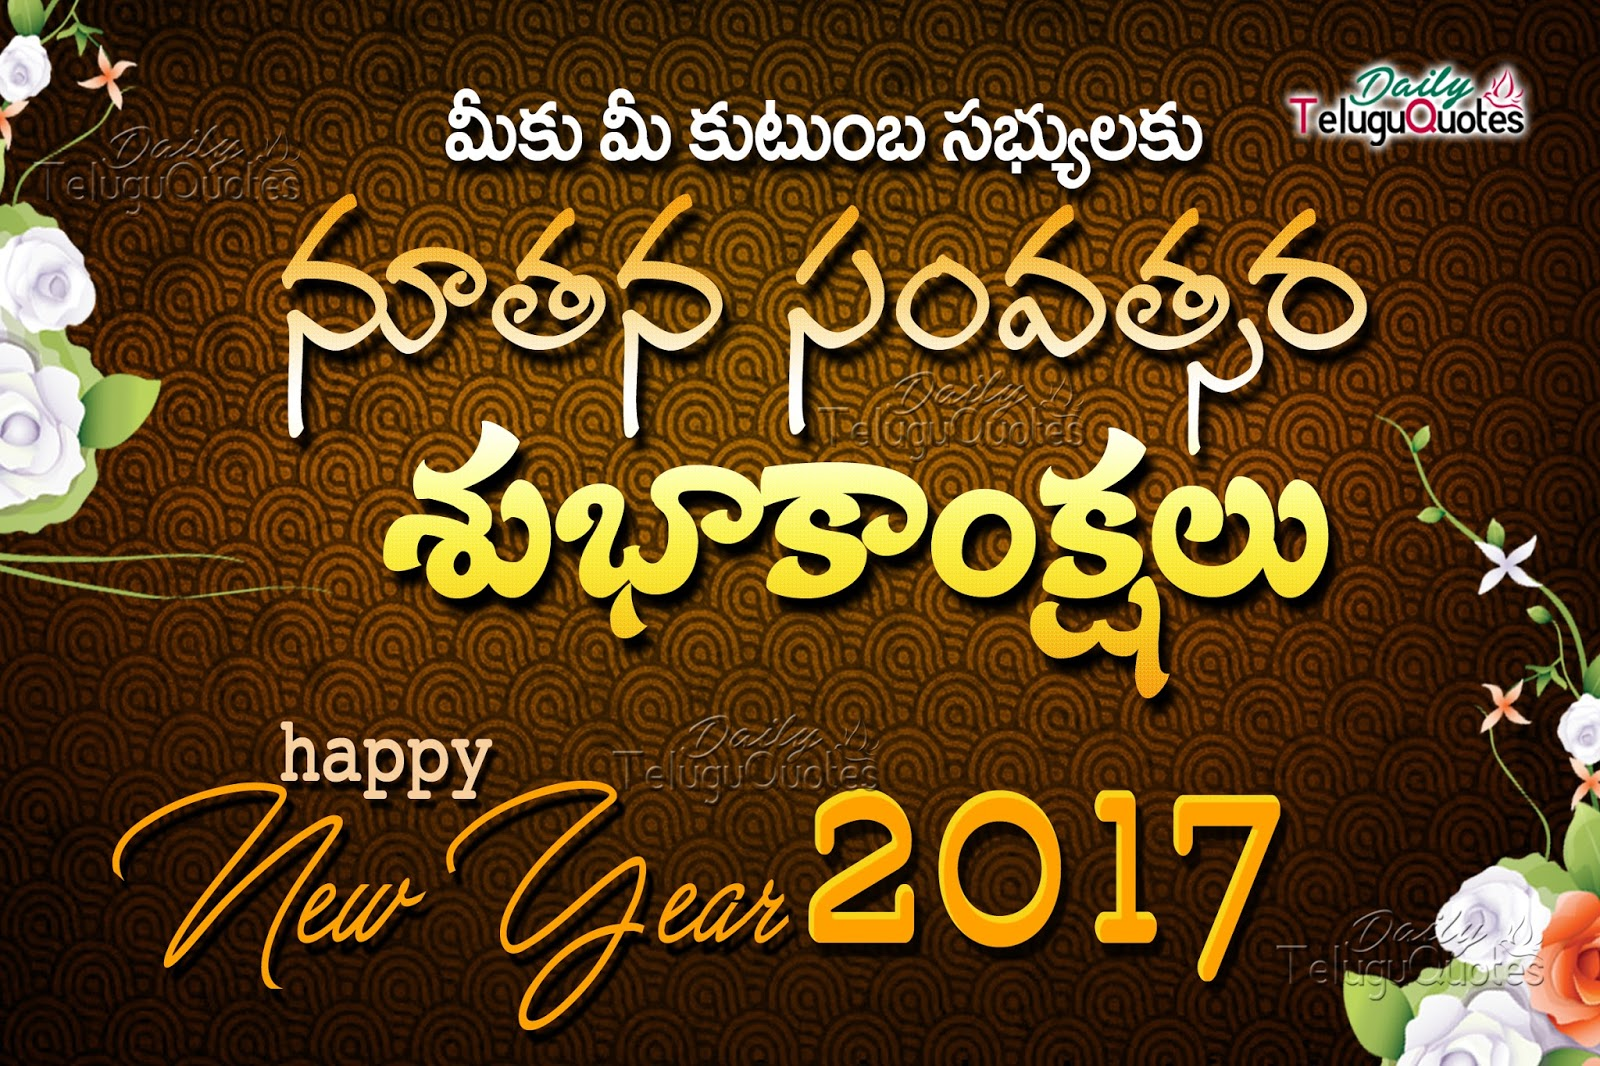 Popular telugu new year sayings 2017 hd backgrounds happy new year 2017 quotes wishes greetings photos kristyandbryce Images